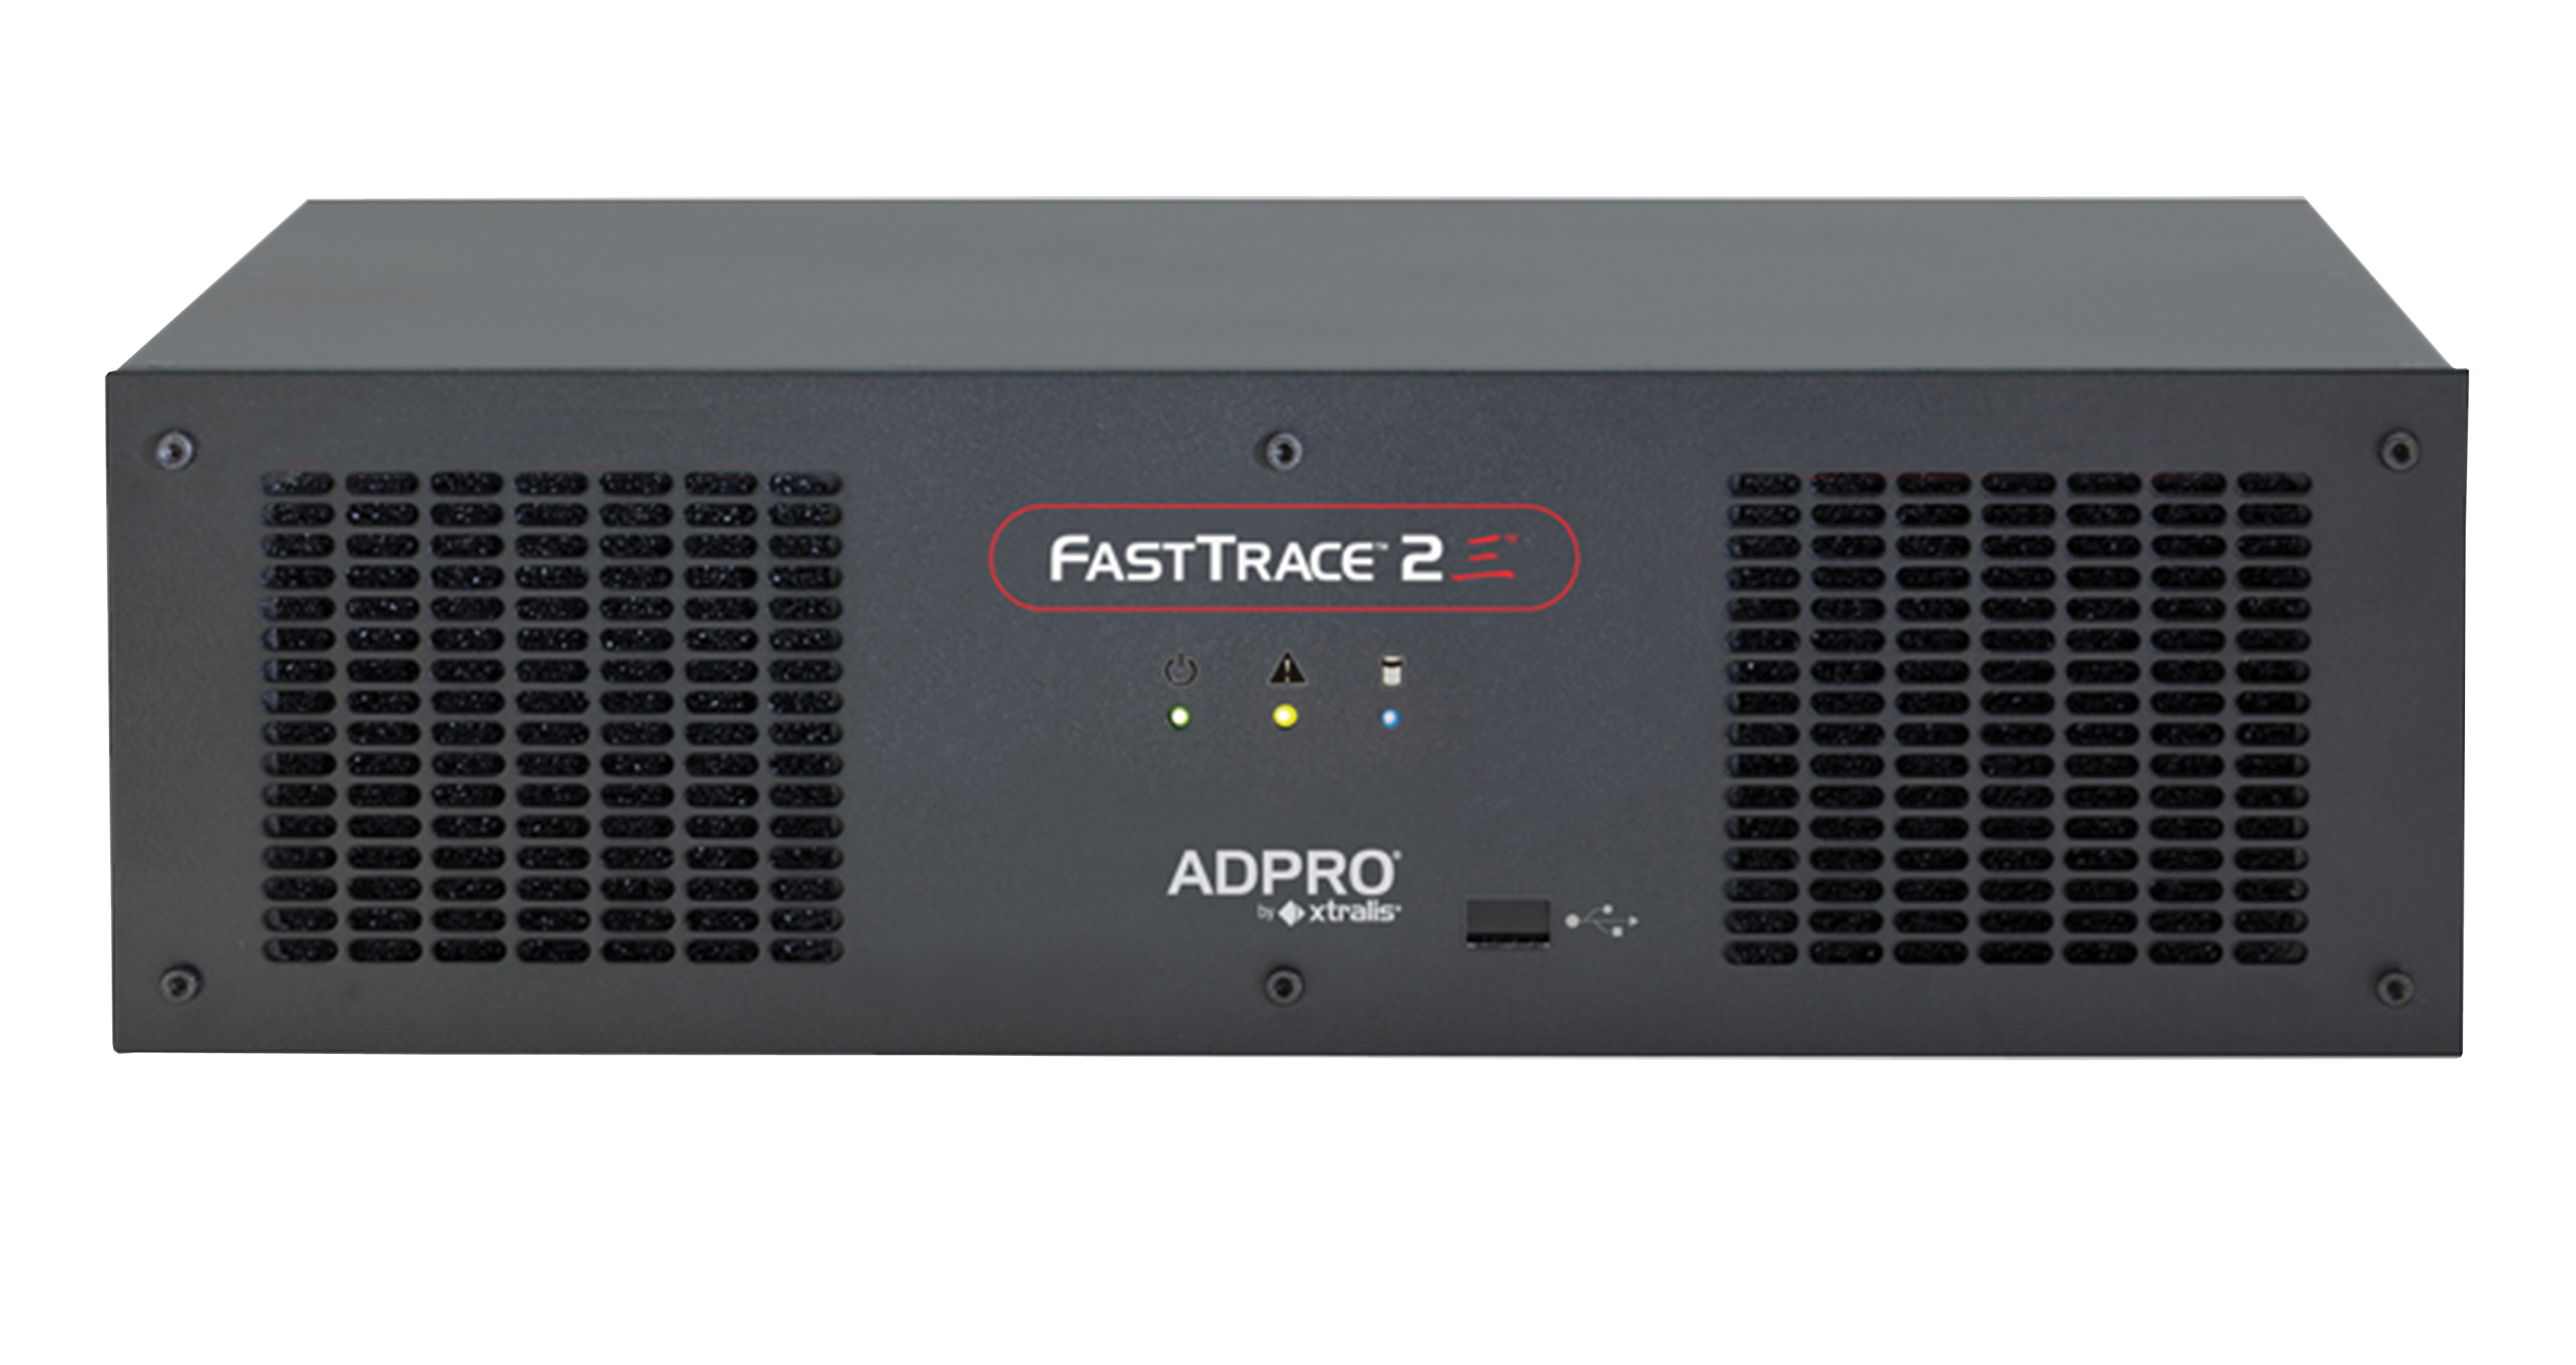 ADPRO FastTrace 2E NVR+ - 4 Analogueue Channels